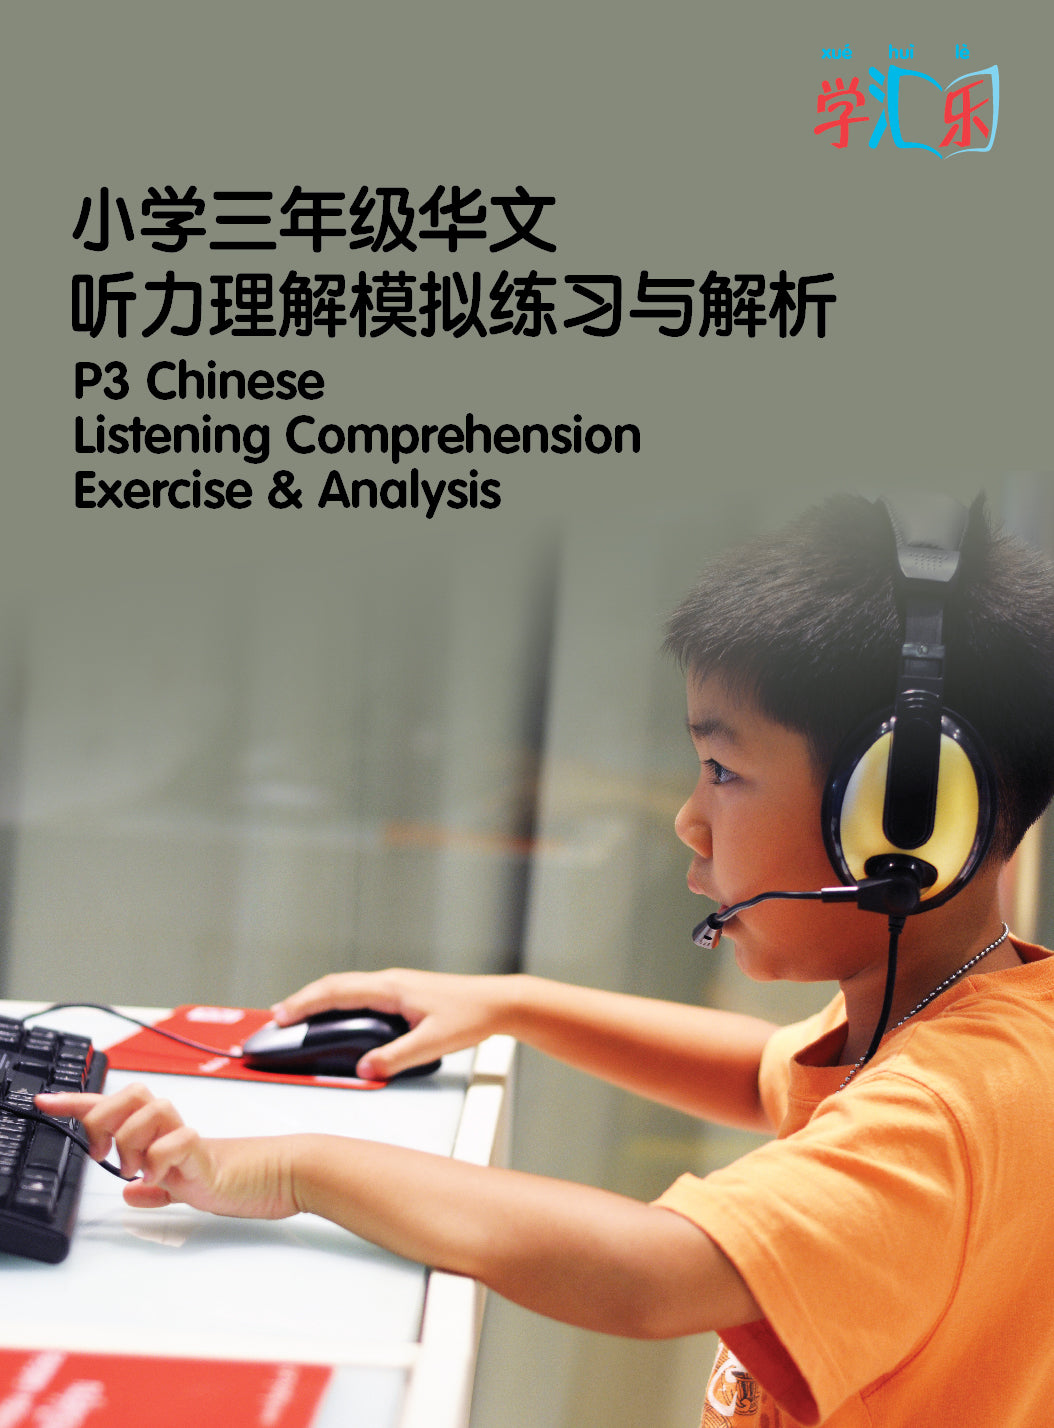 P3 Chinese Listening Comprehension Exercise and Analysis